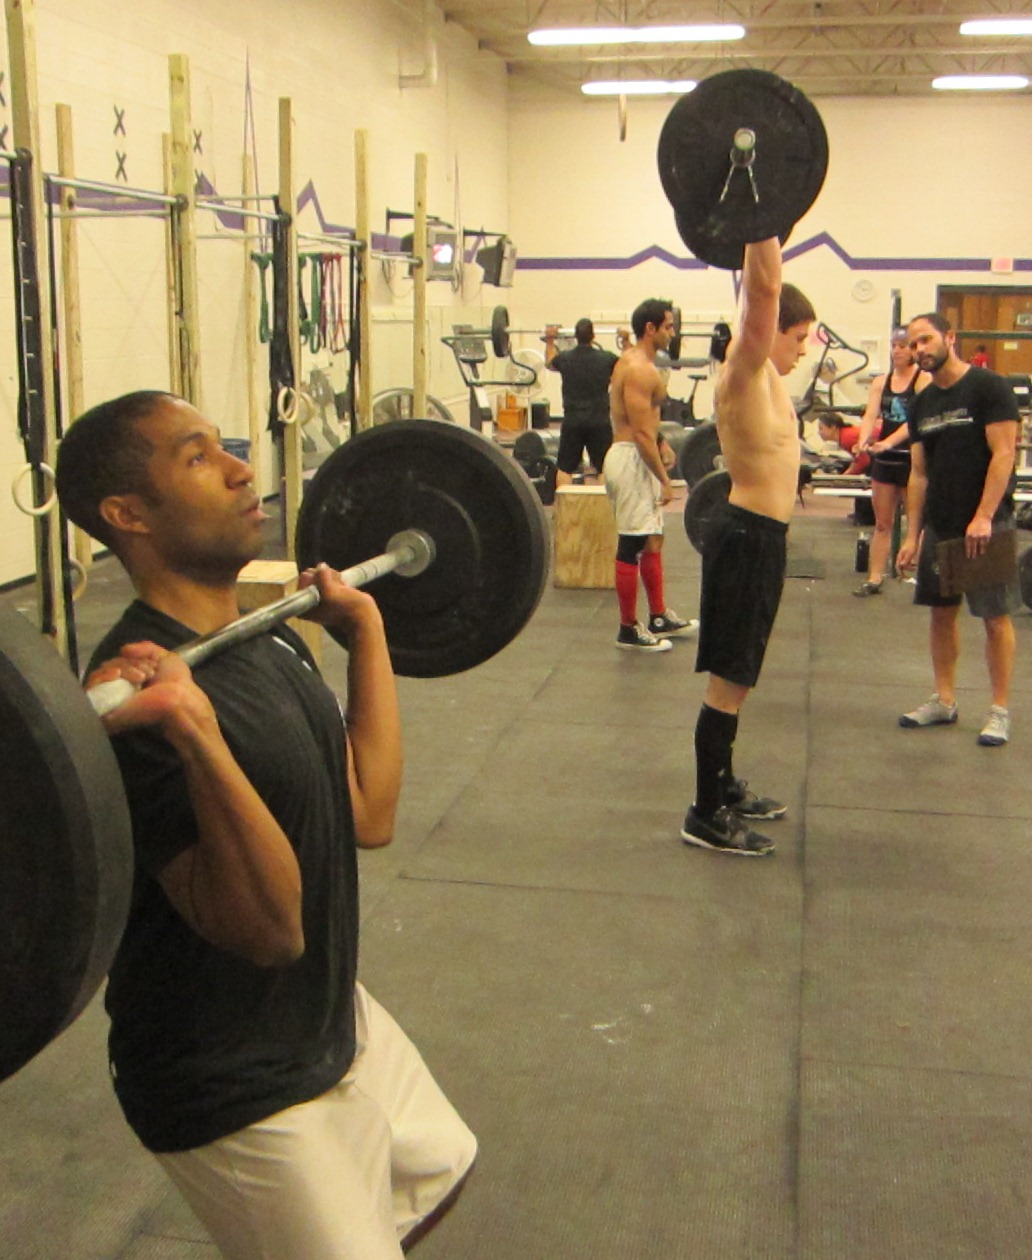 Results Crossfit Workout: 2012 Manhattan CrossFit Open Results